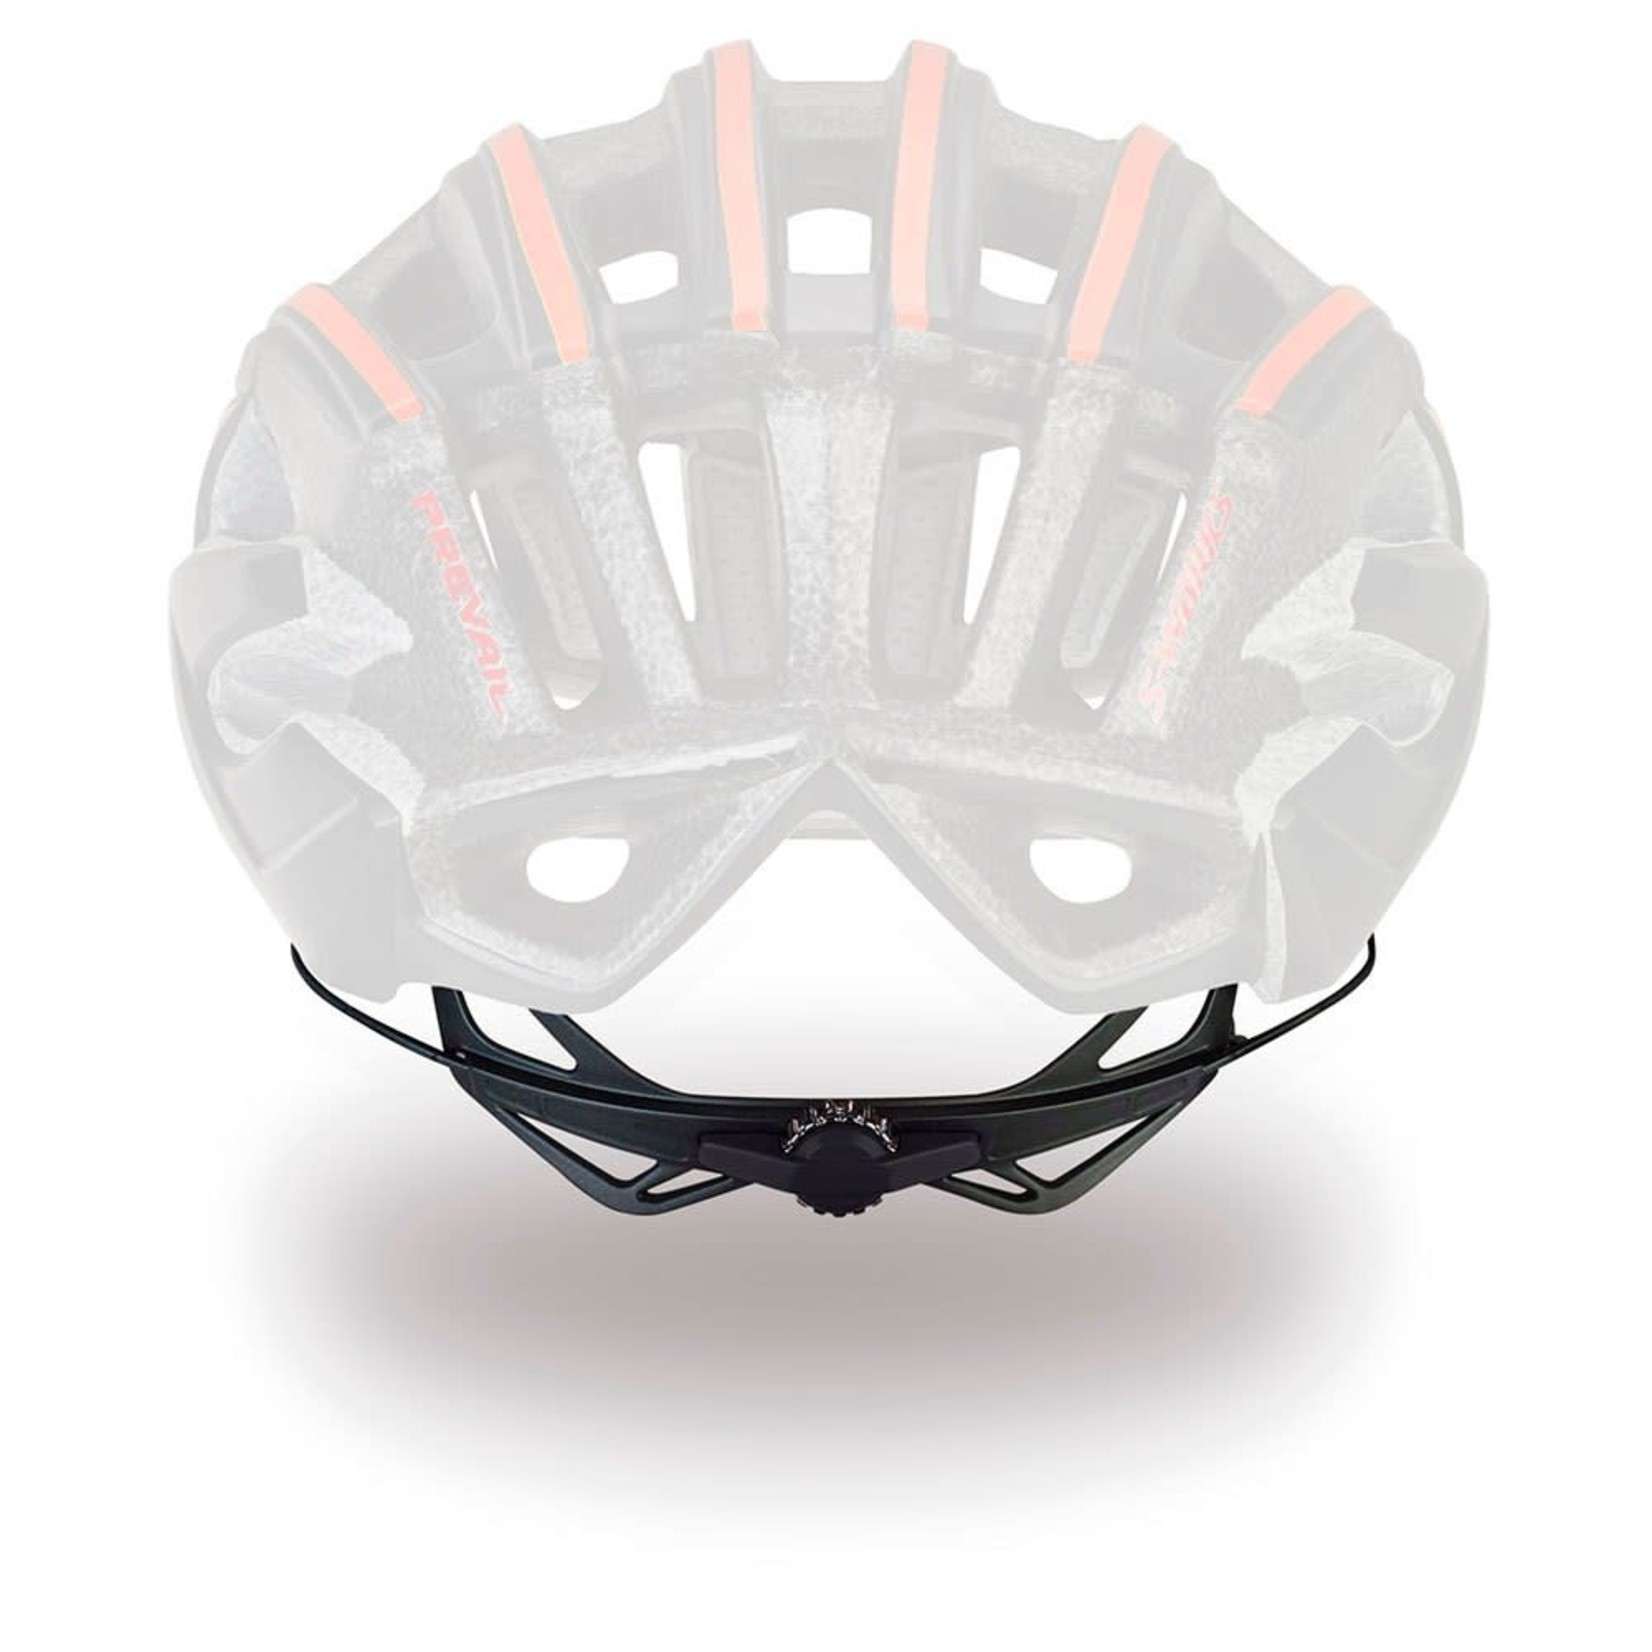 SPECIALIZED Specialized Mindset II Retension System Prevail